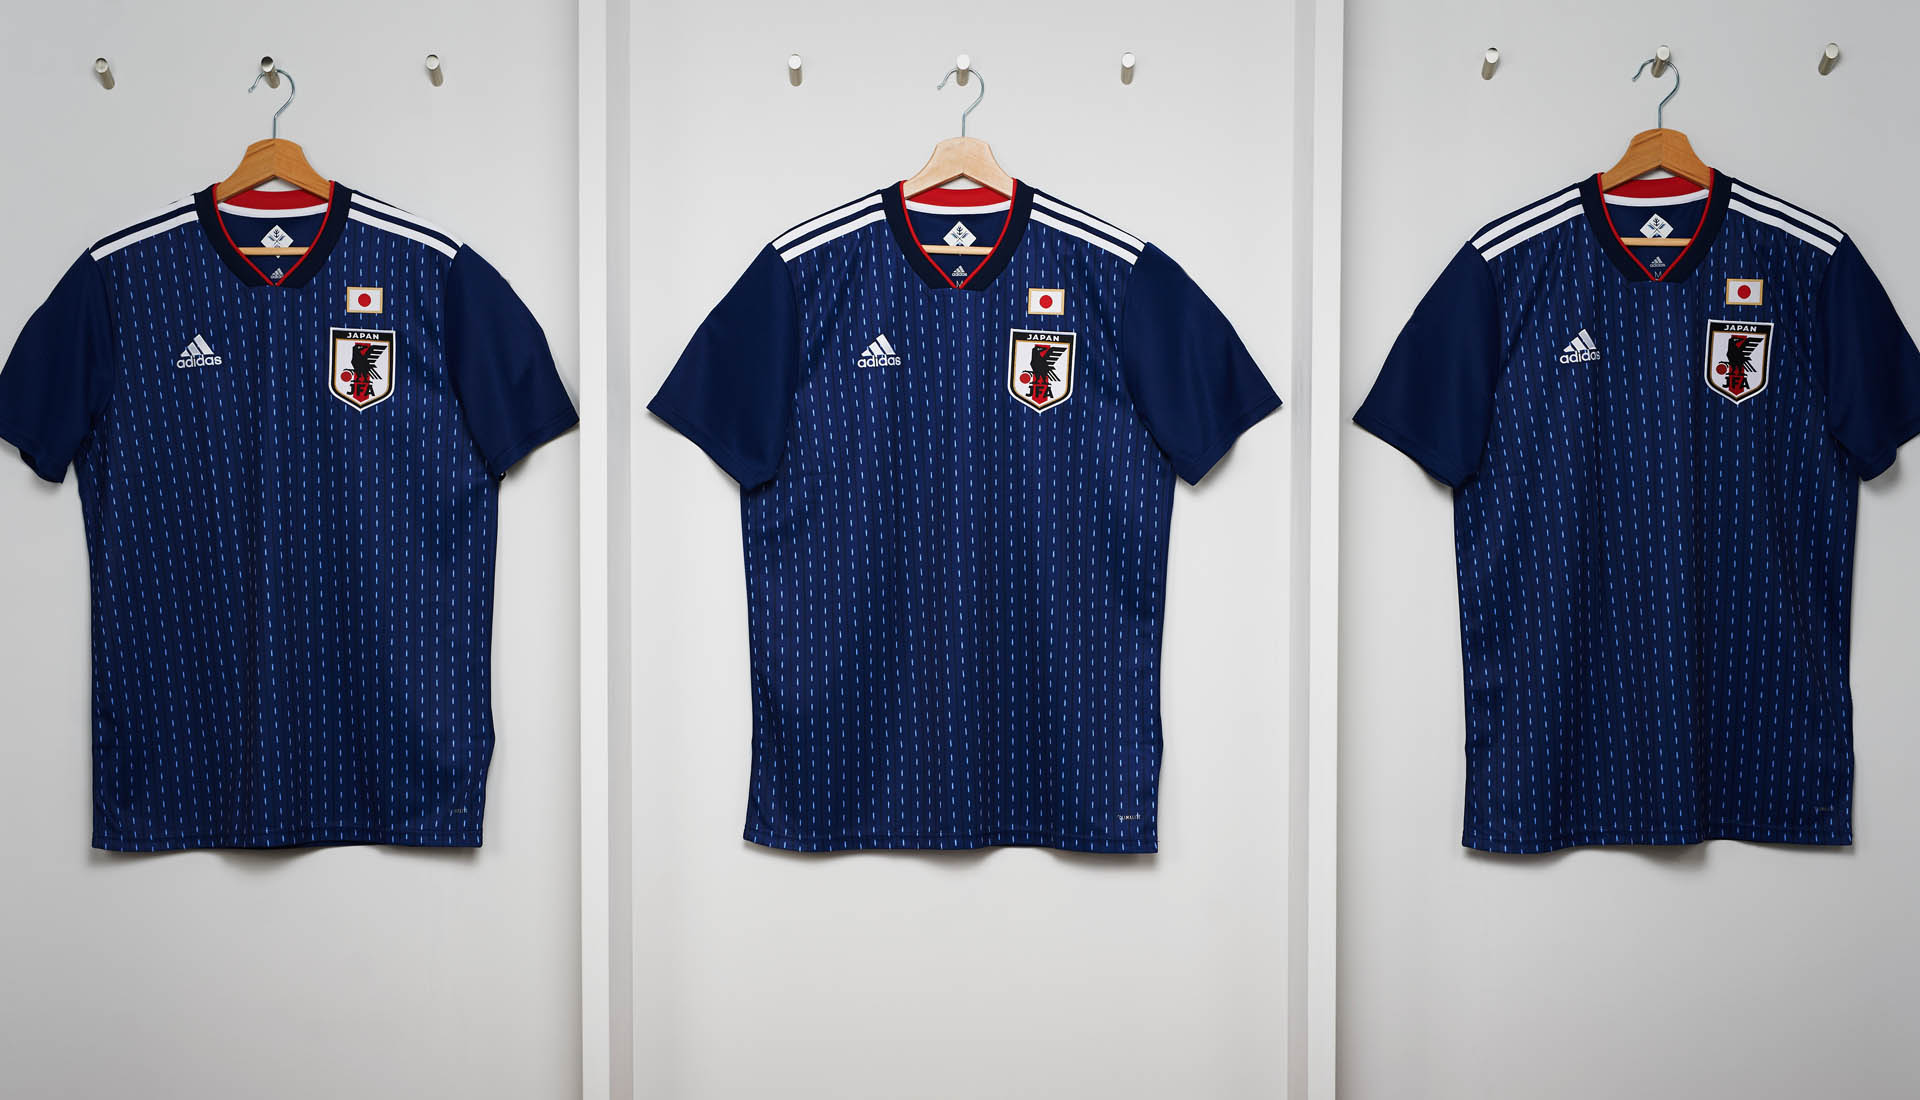 Japan World Cup Shirt 2018 adidas SoccerBible_0000_4x3_JAPAN_Shirt-1.jpg